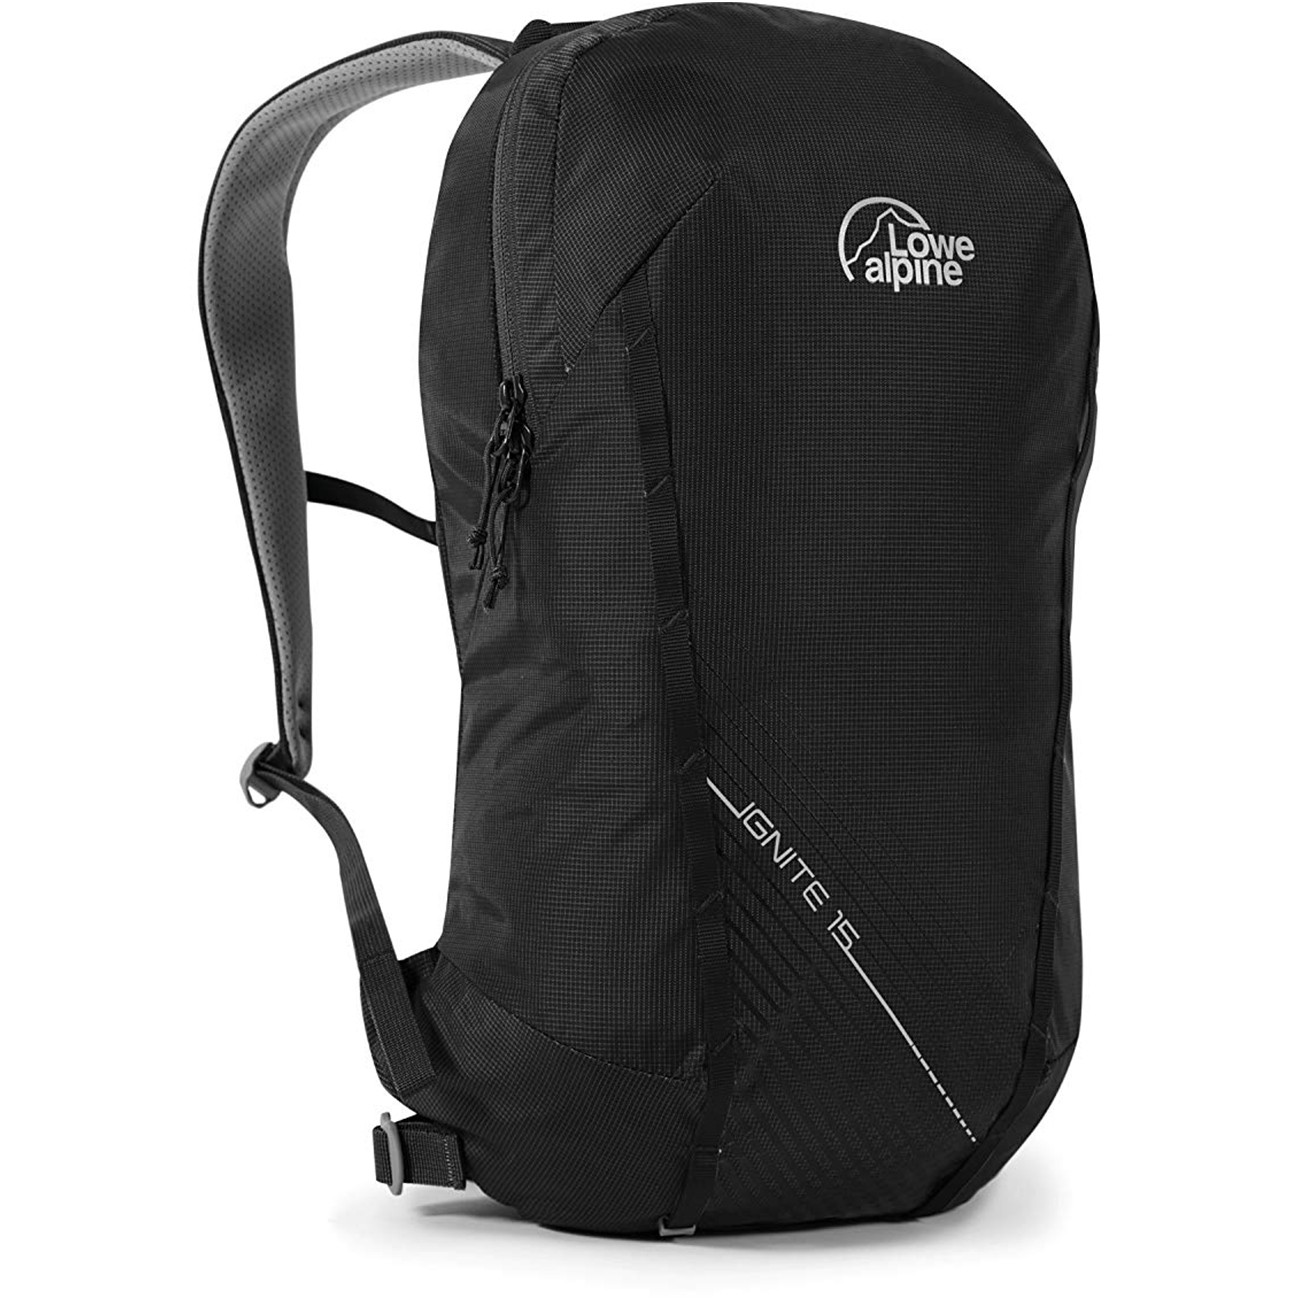 Lowe Alpine Ignite 15 Rucksack - Black